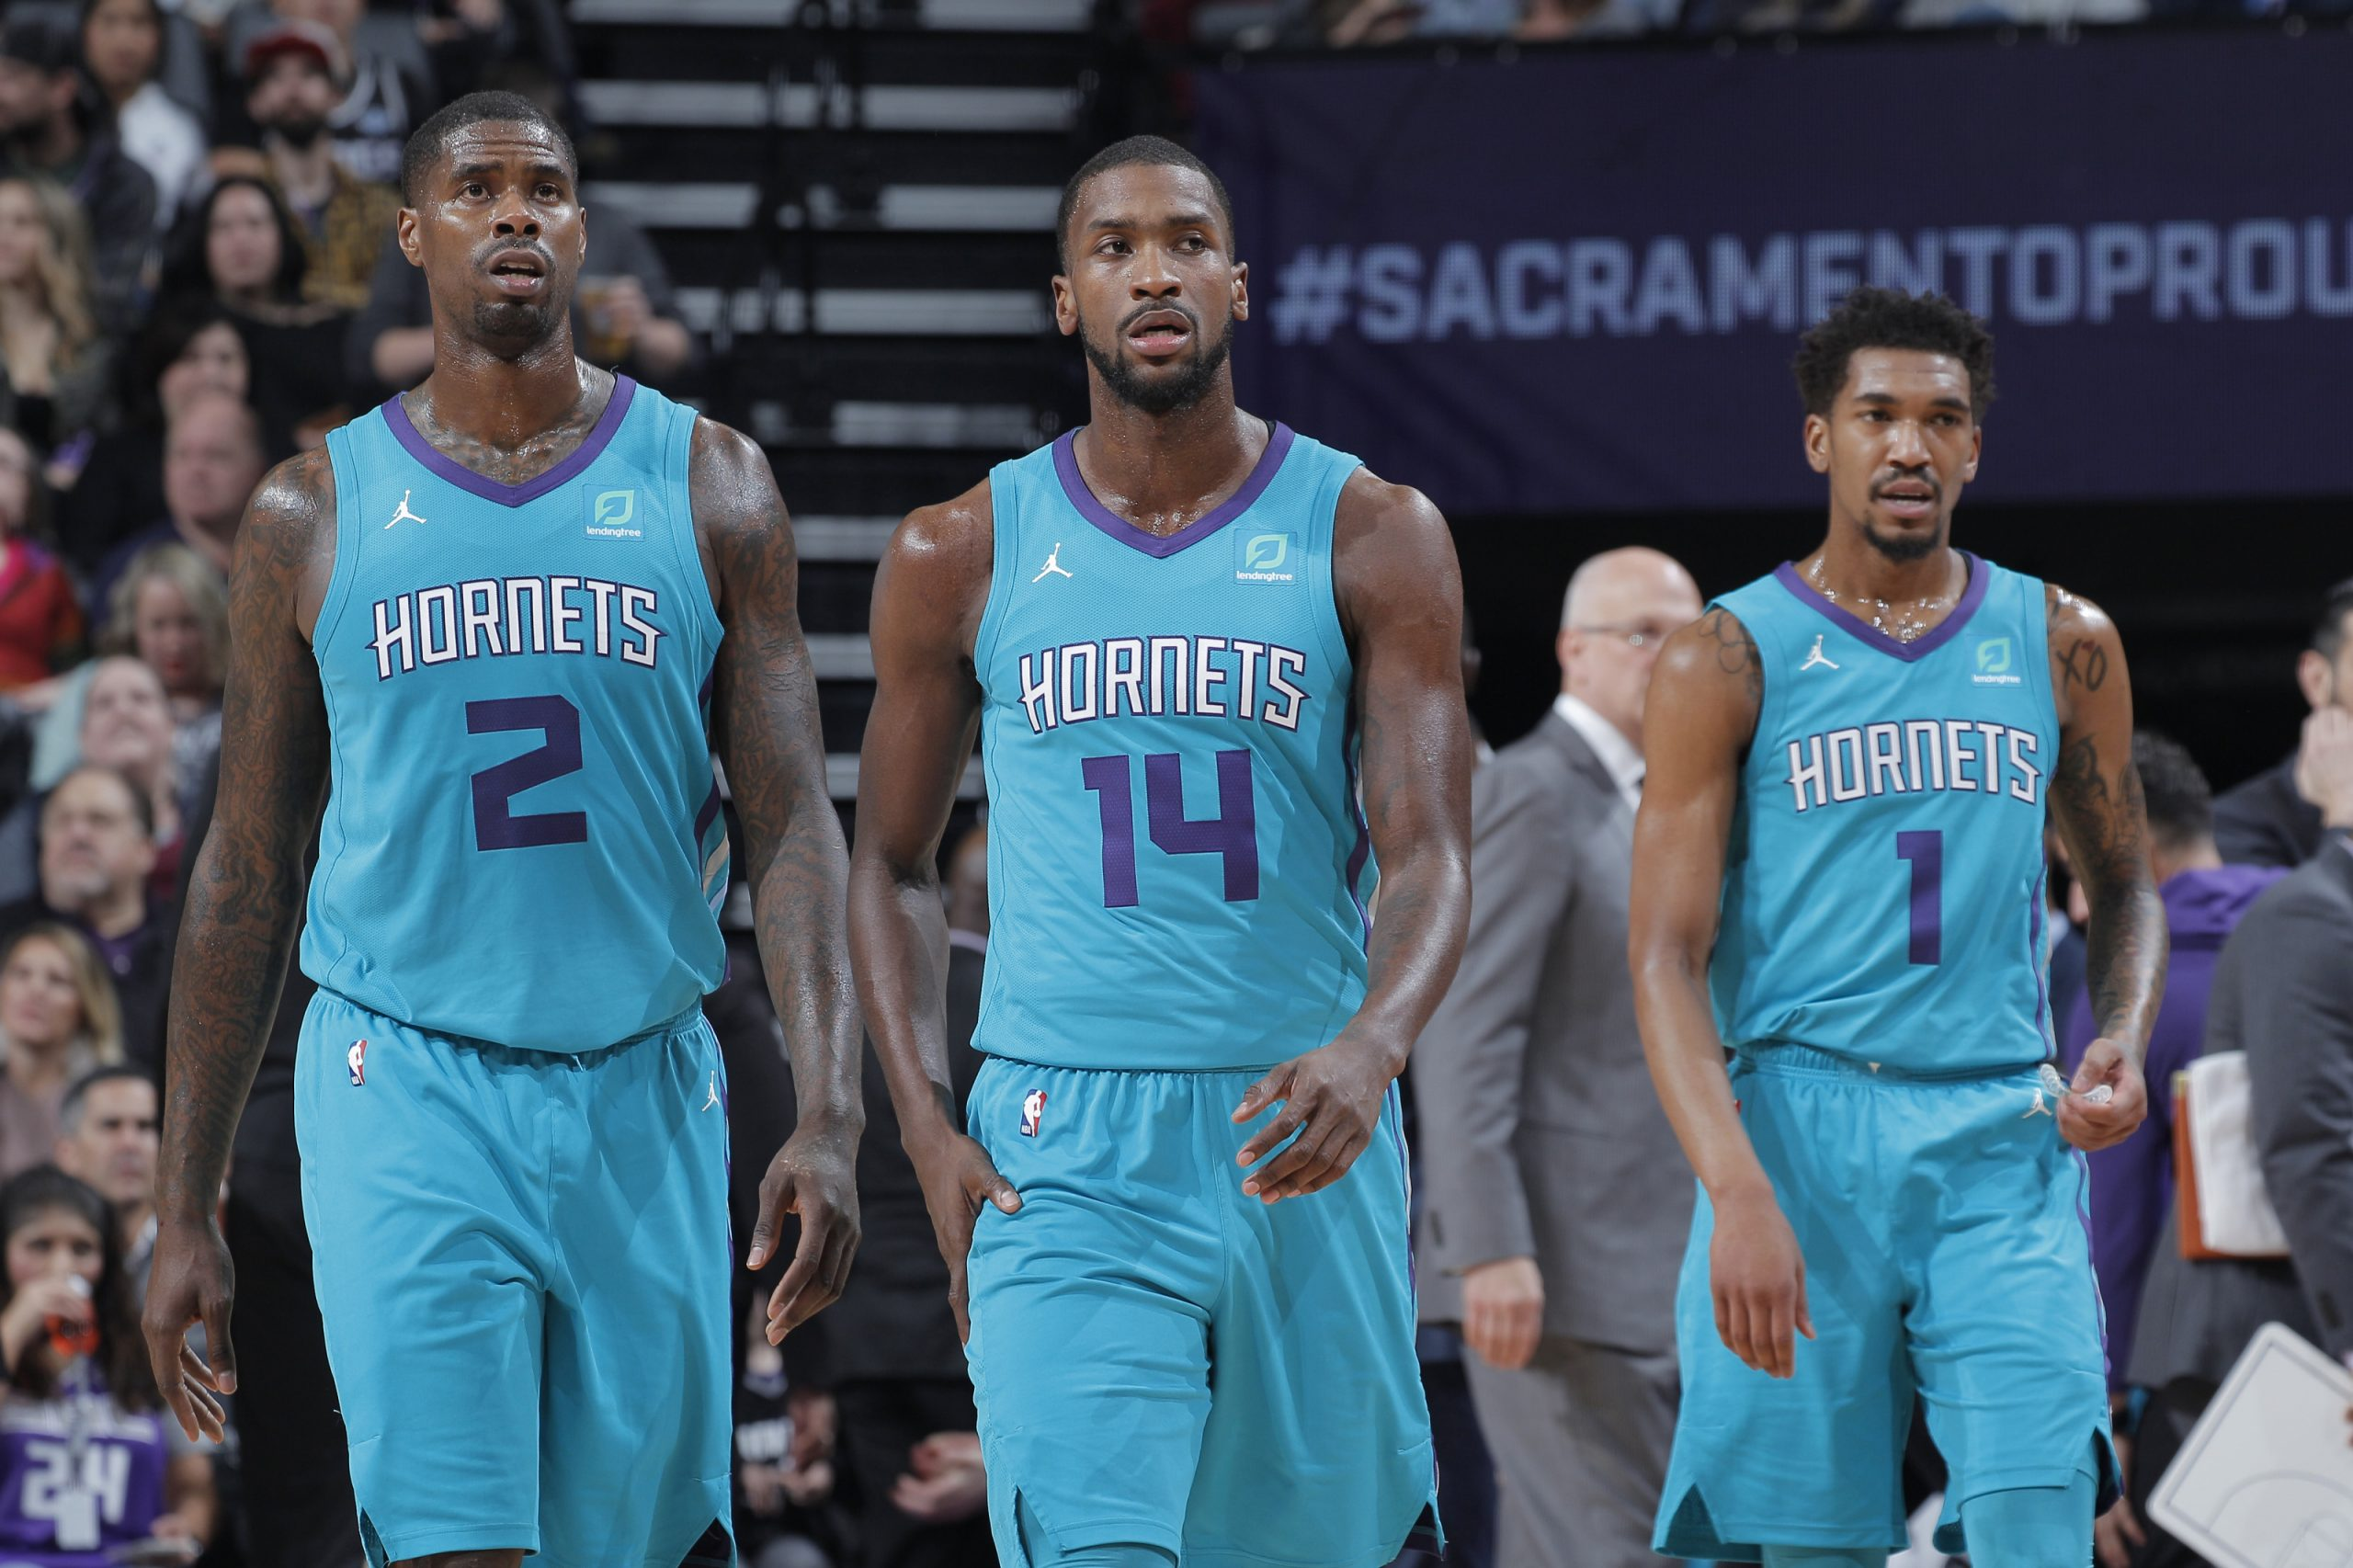 Nuggets Come To Town To Meet P.J. Washington And Hornets, At Charlotte Hornets